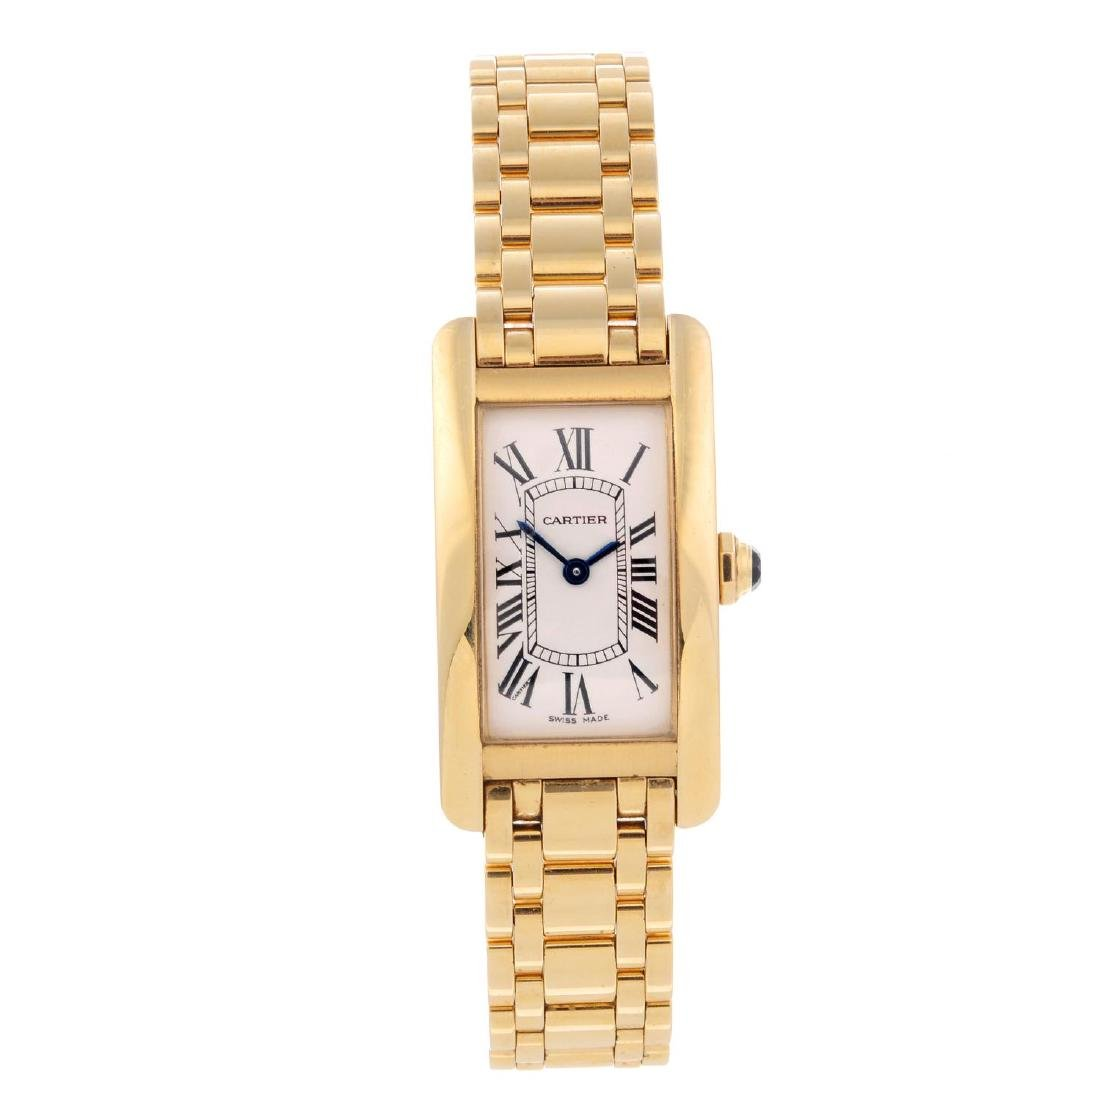 CARTIER - a Tank Americaine bracelet watch. 18ct yellow